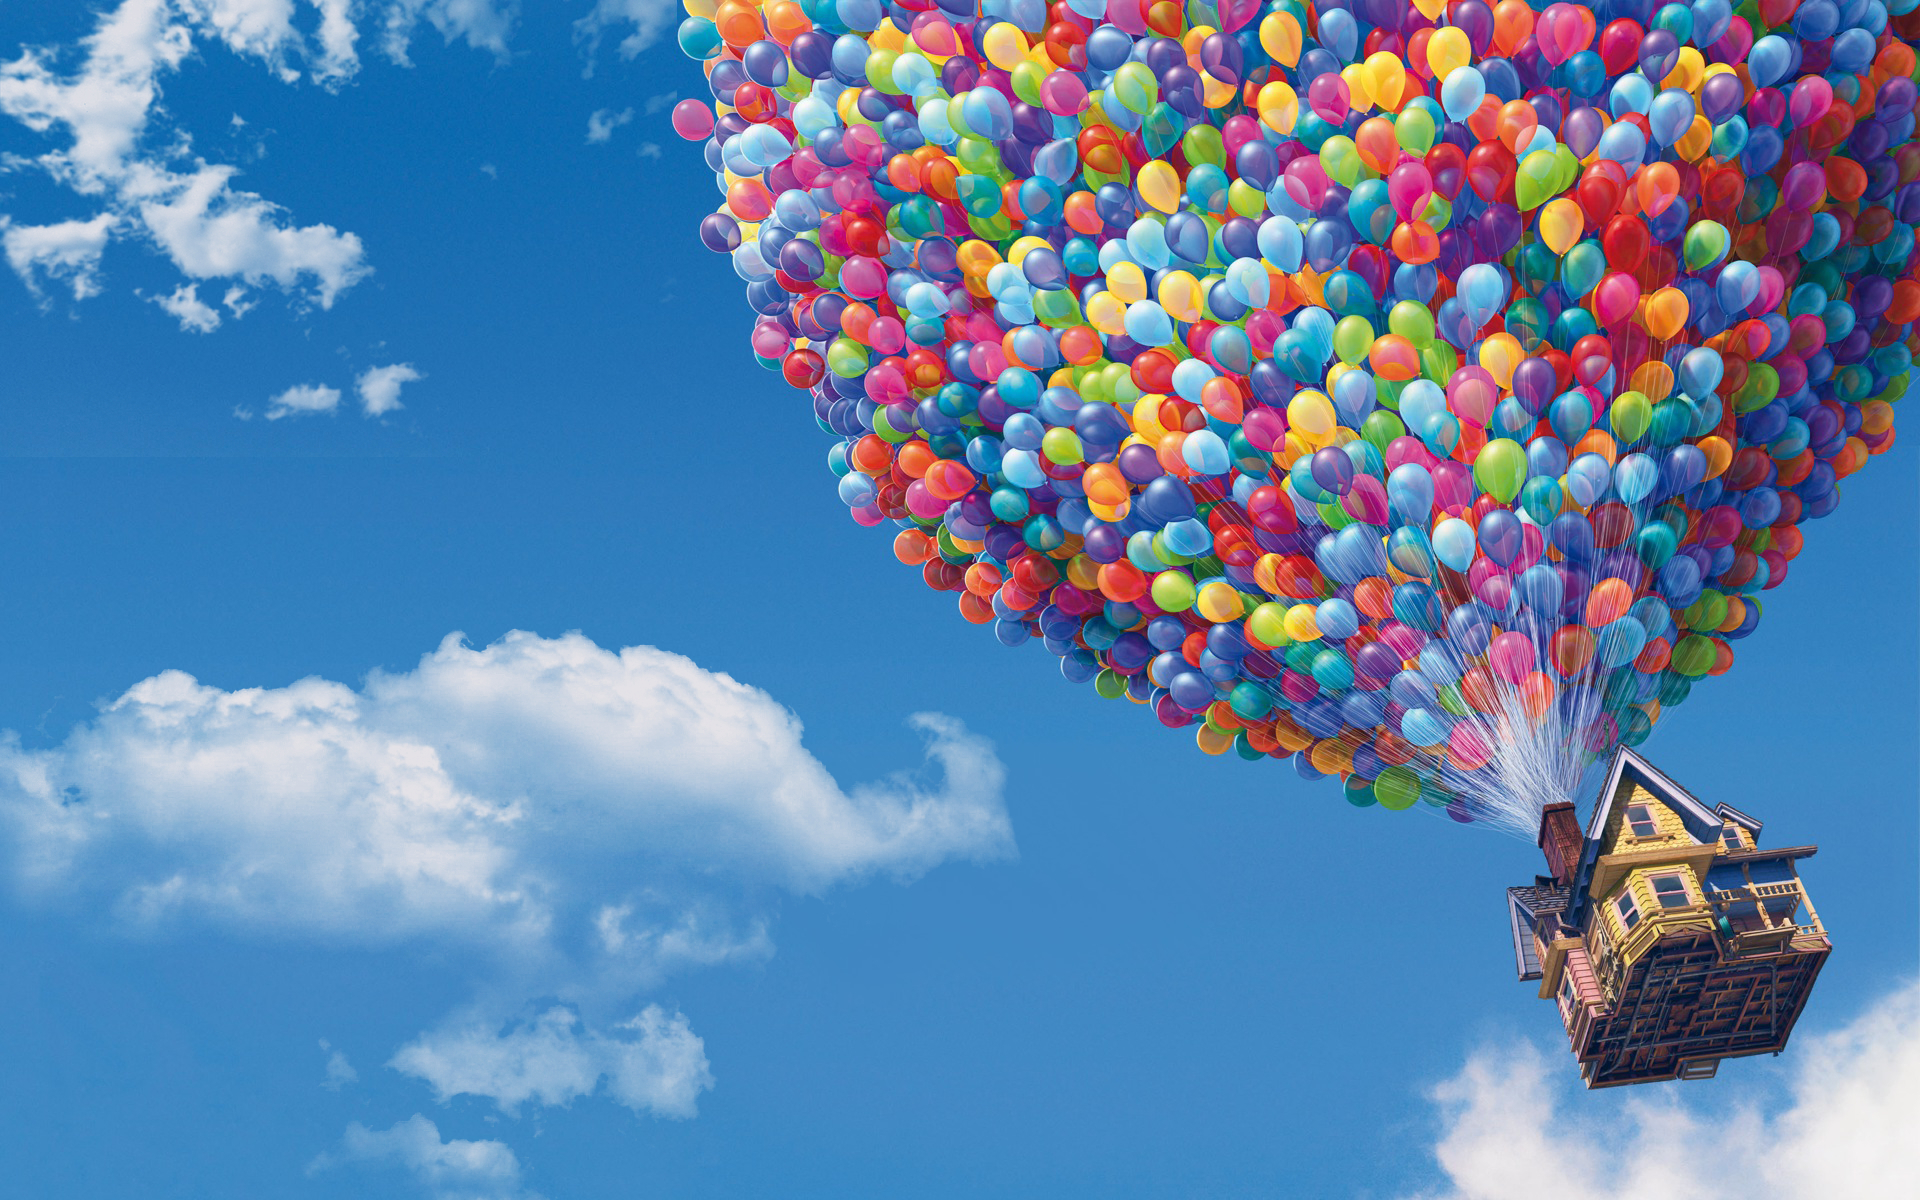 pixar Up Movie HD Wallpaper